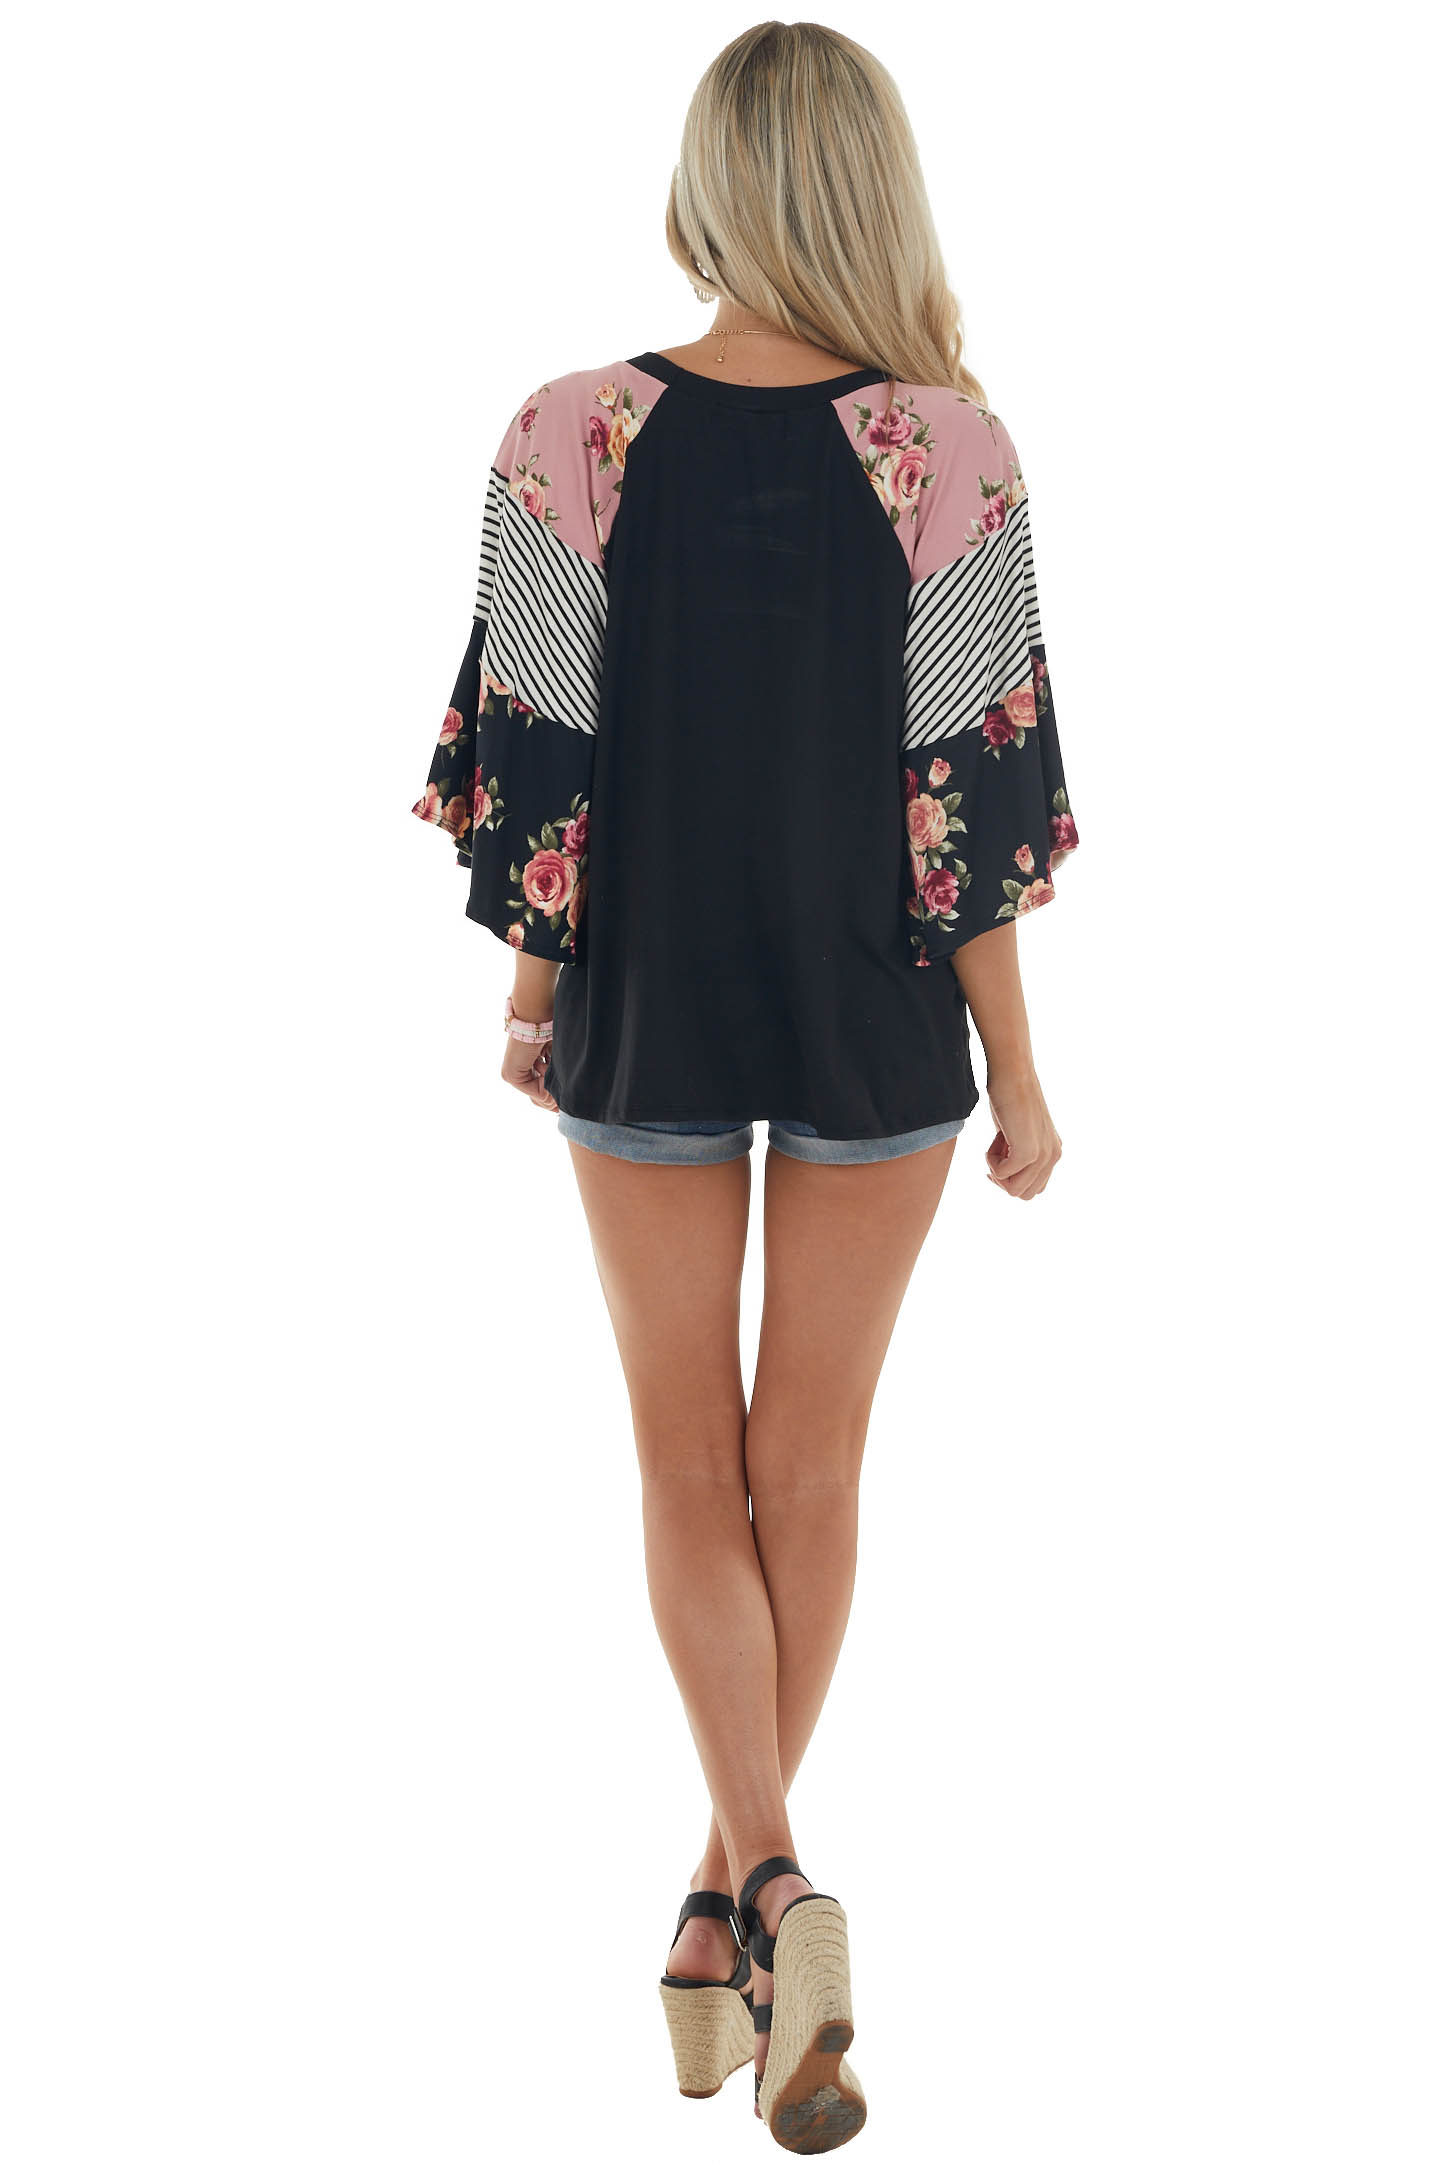 Black Knit Top with Multiprint Bell Sleeves